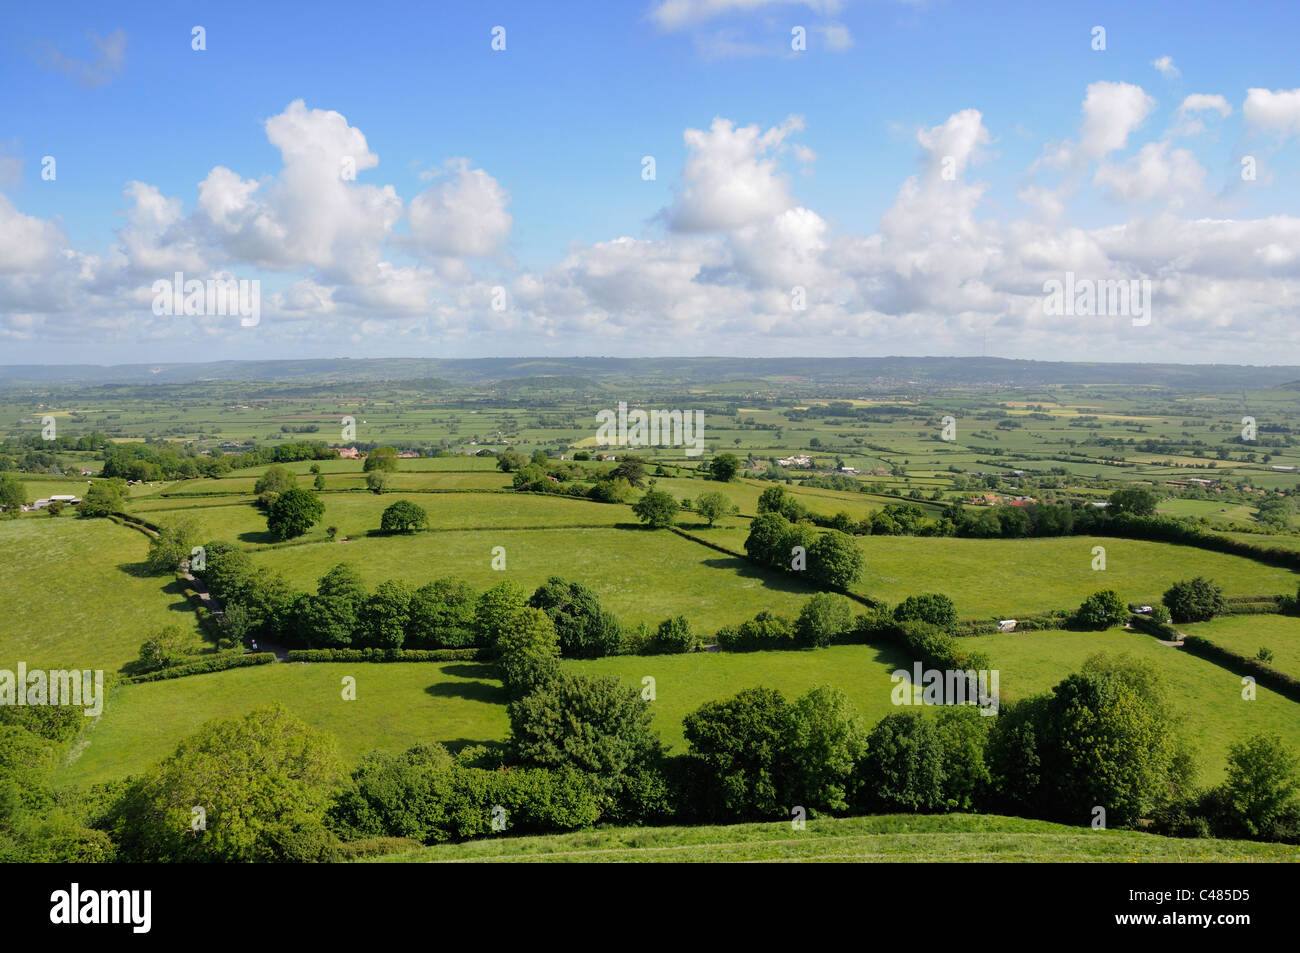 View of the Somerset Countryside, looking North from Glastonbury Tor, Somerset, England, May - Stock Image